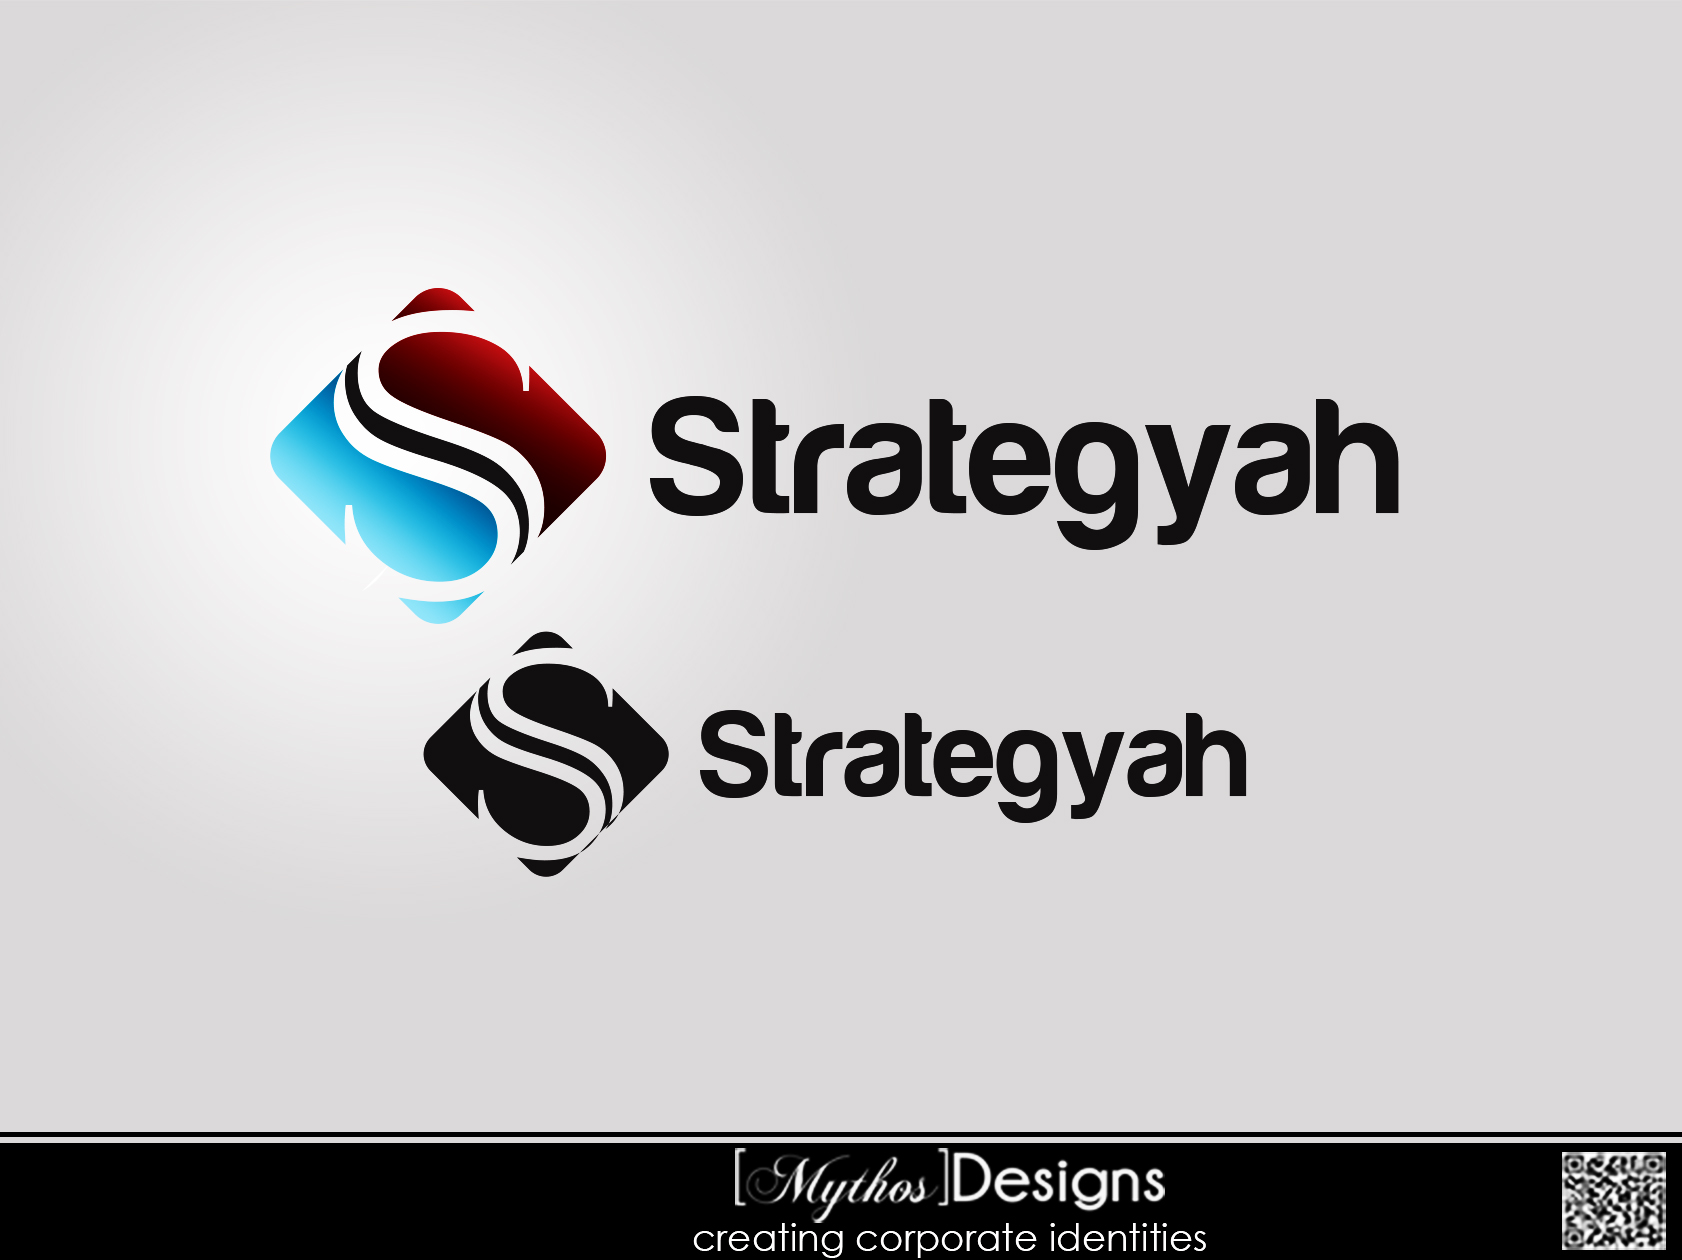 Logo Design by Mythos Designs - Entry No. 399 in the Logo Design Contest Creative Logo Design for Strategyah.